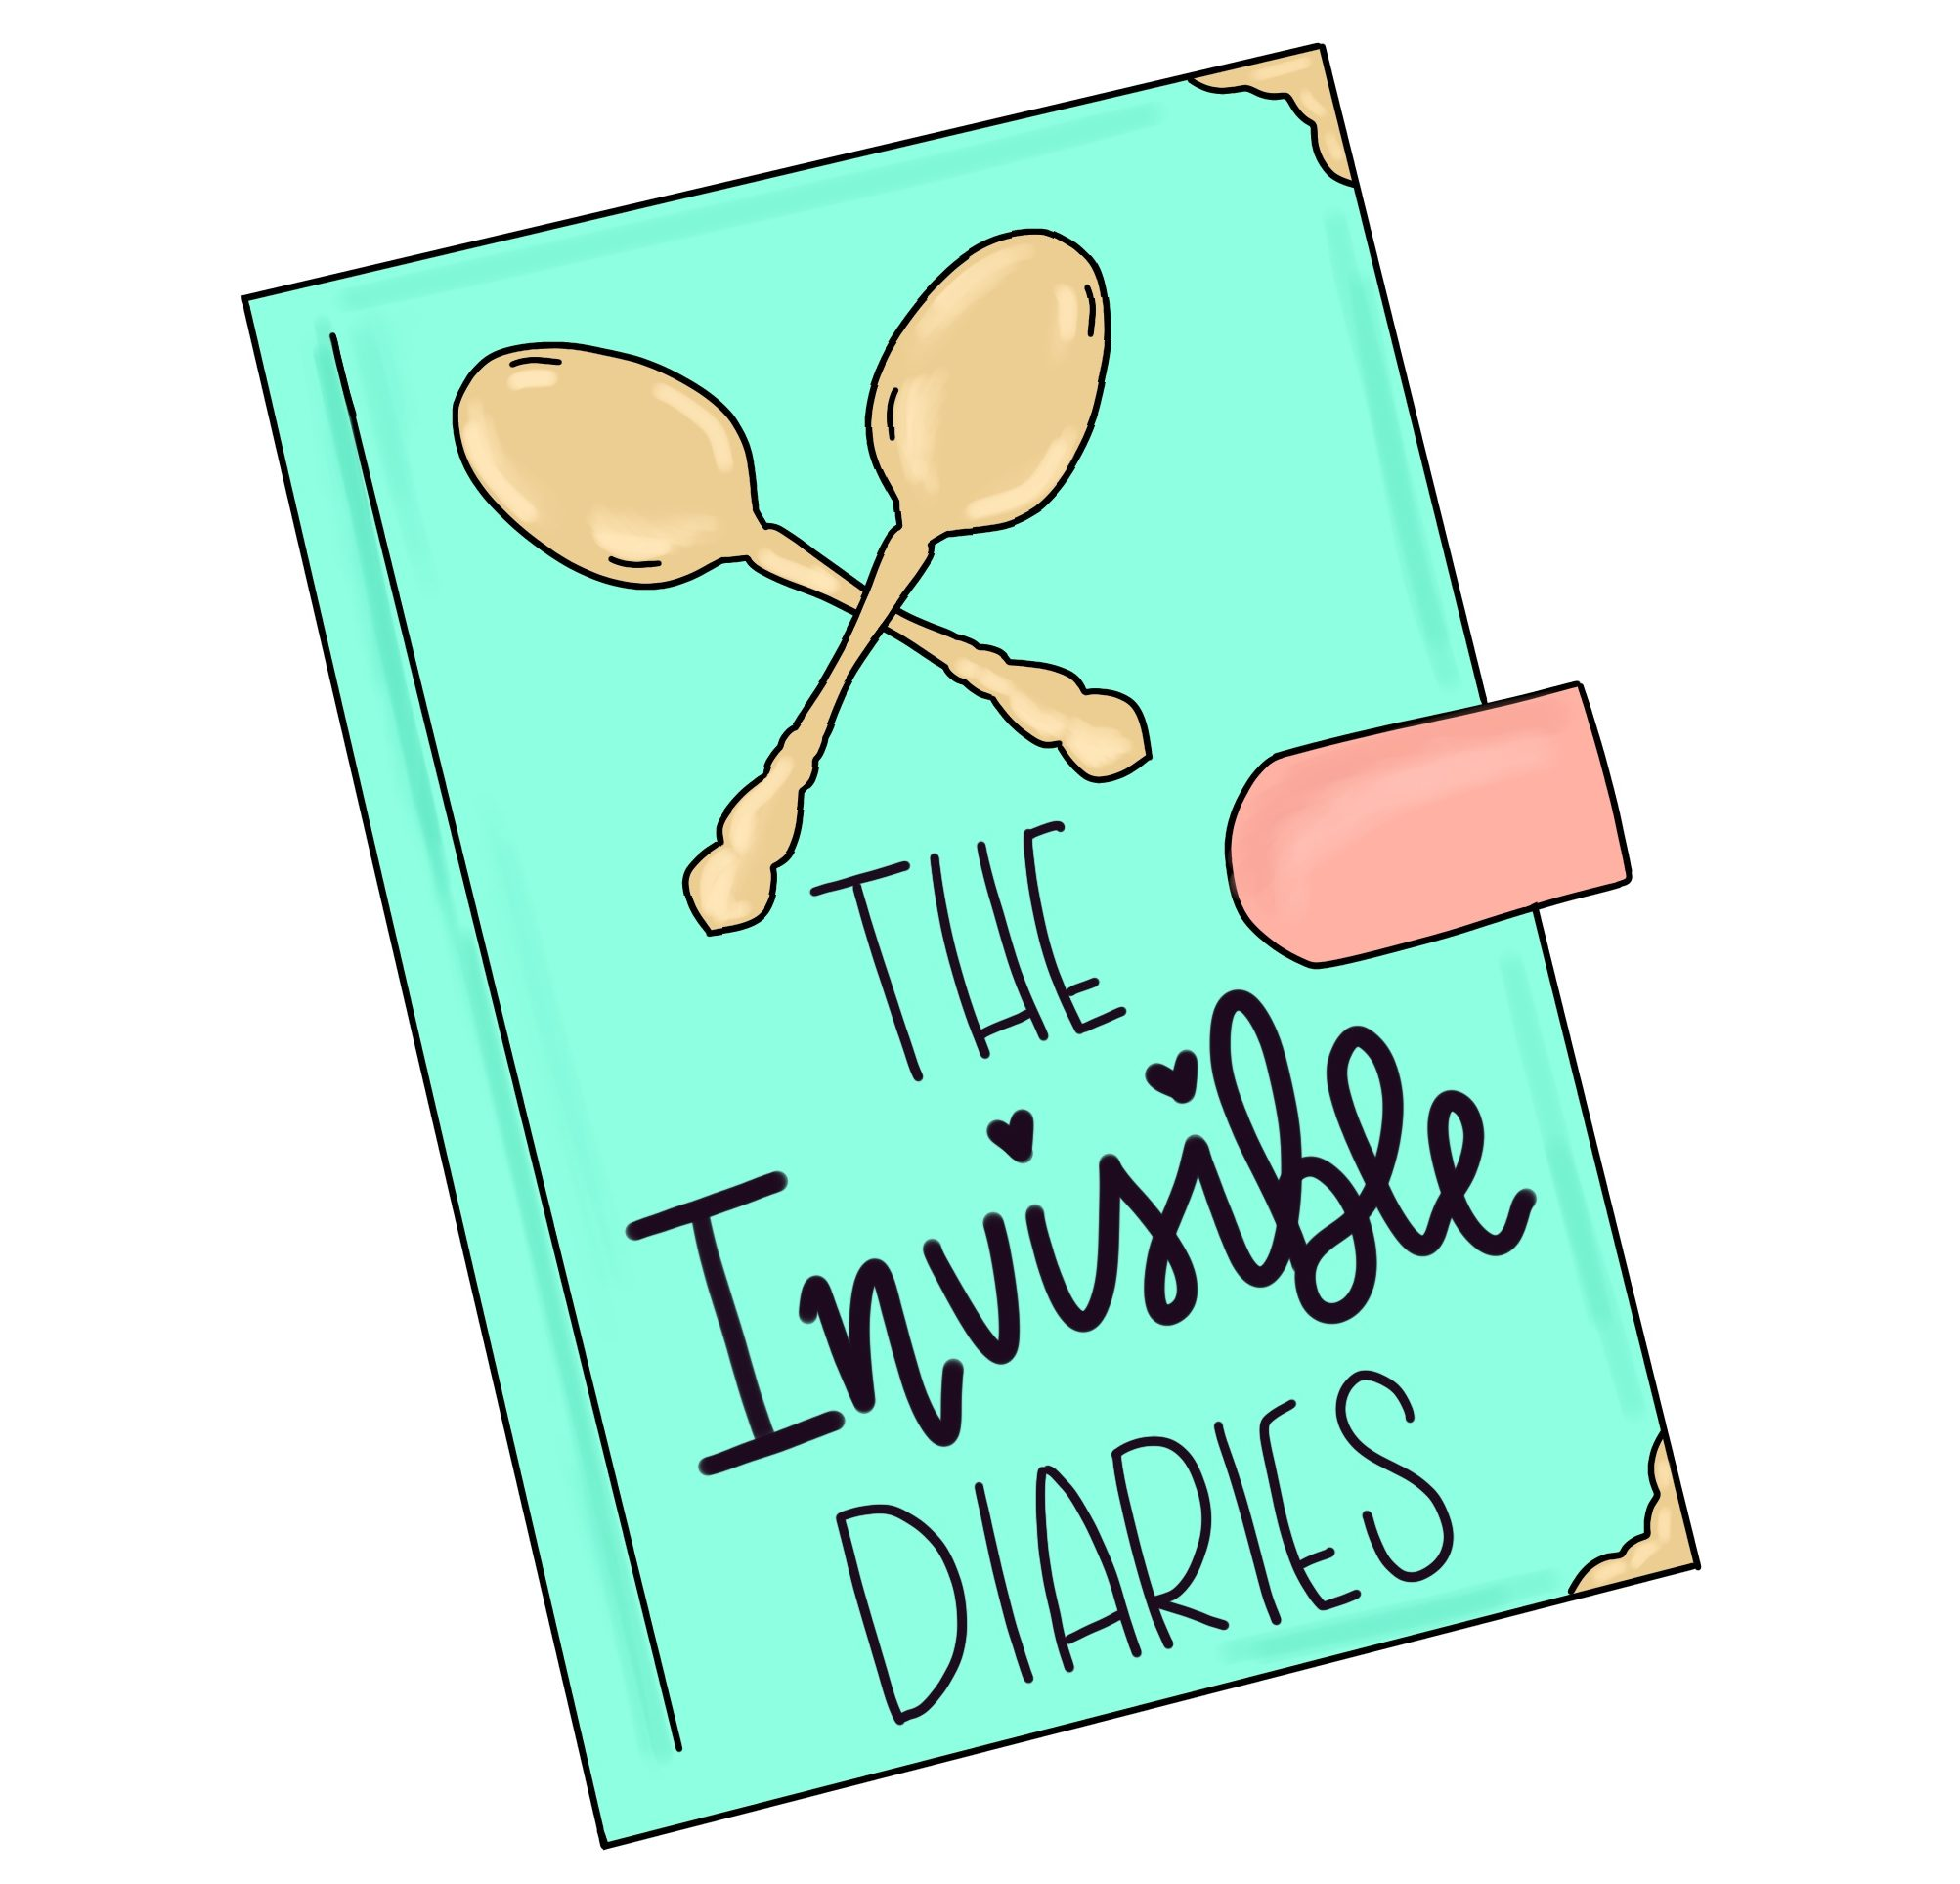 The Invisible Diaries